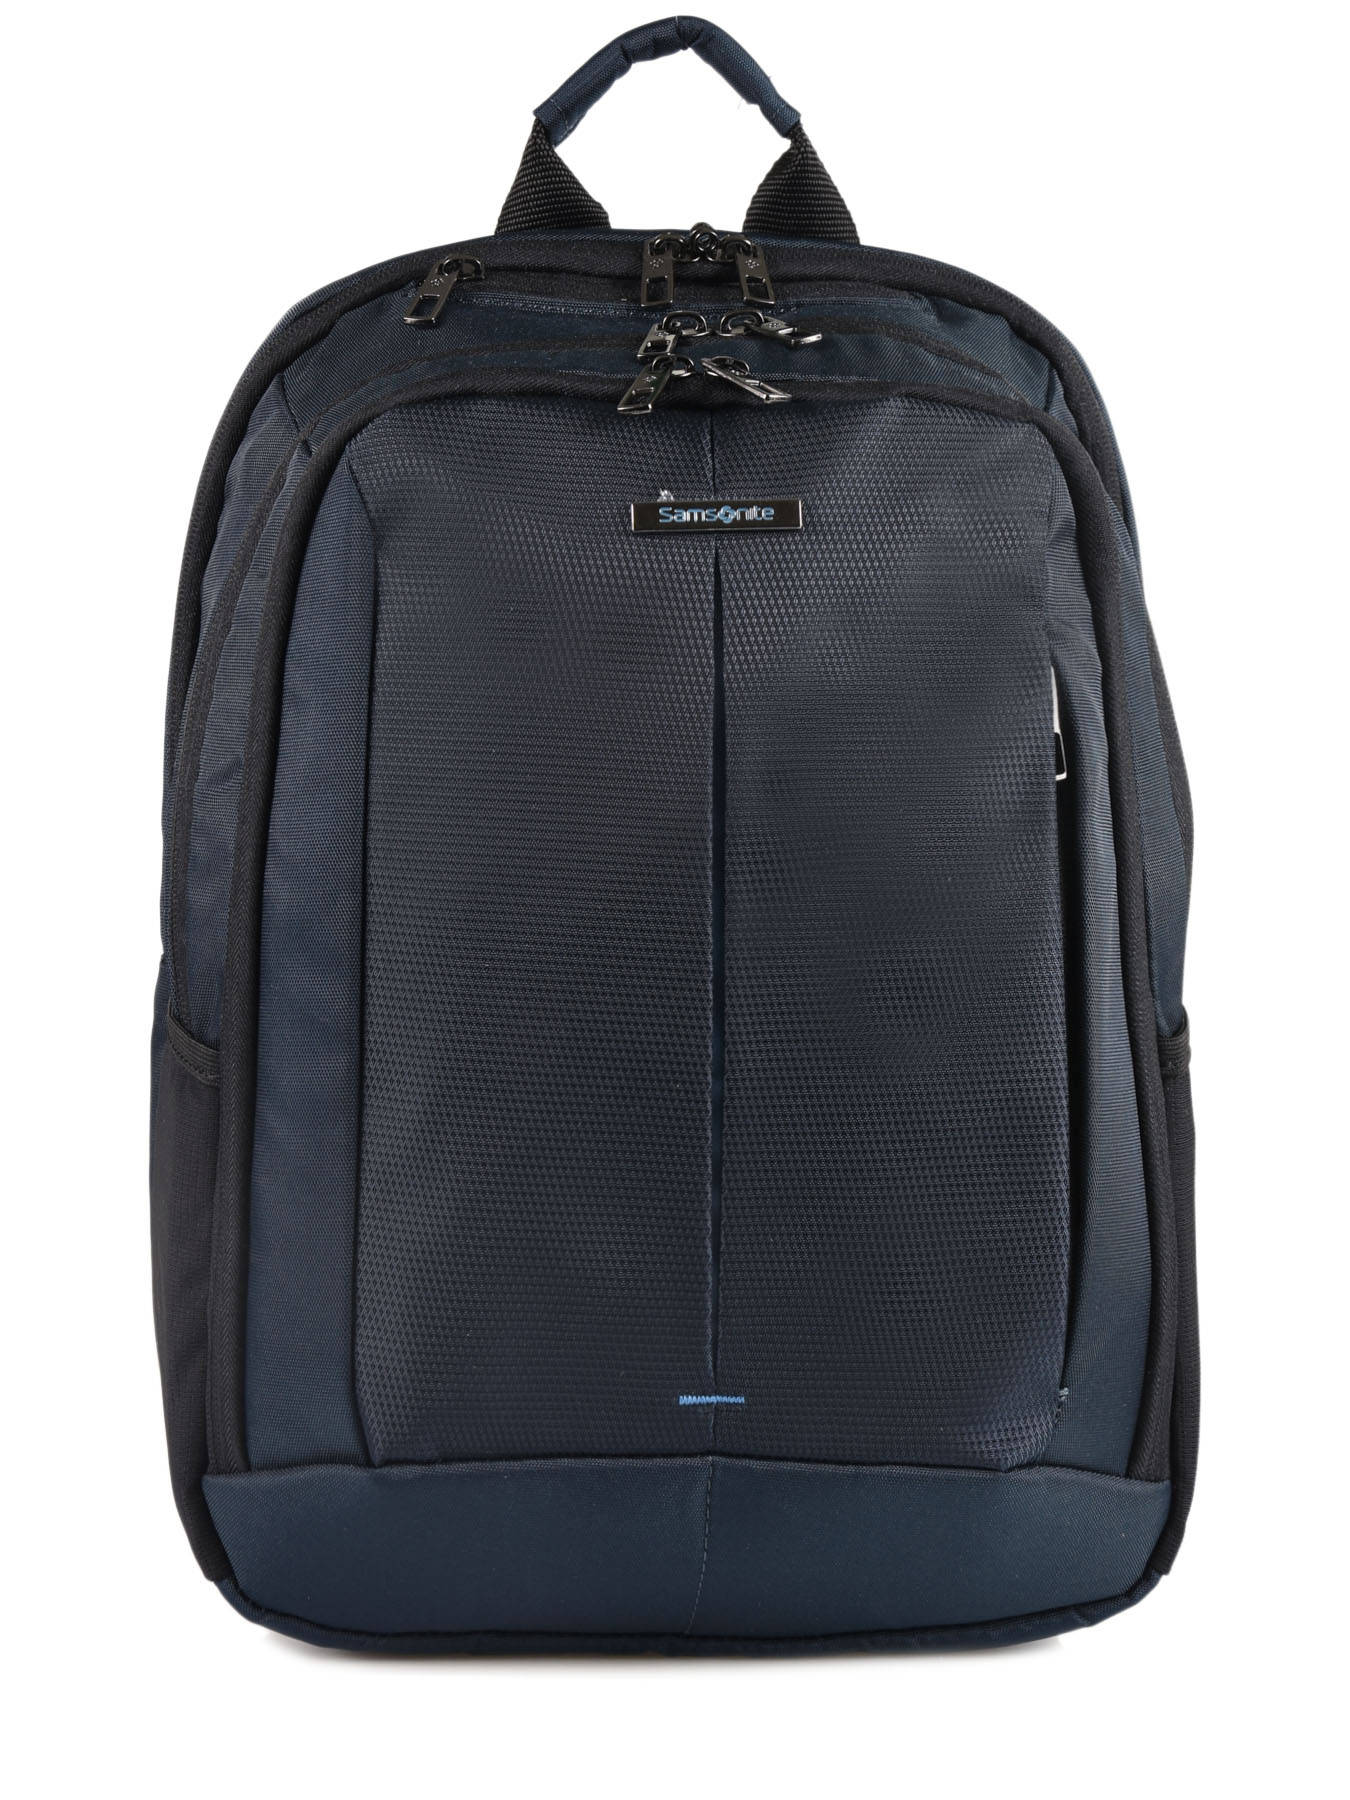 37e34687ae7 ... Backpack 14'' Laptop Samsonite Blue guardit 2.0 CM5005 ...